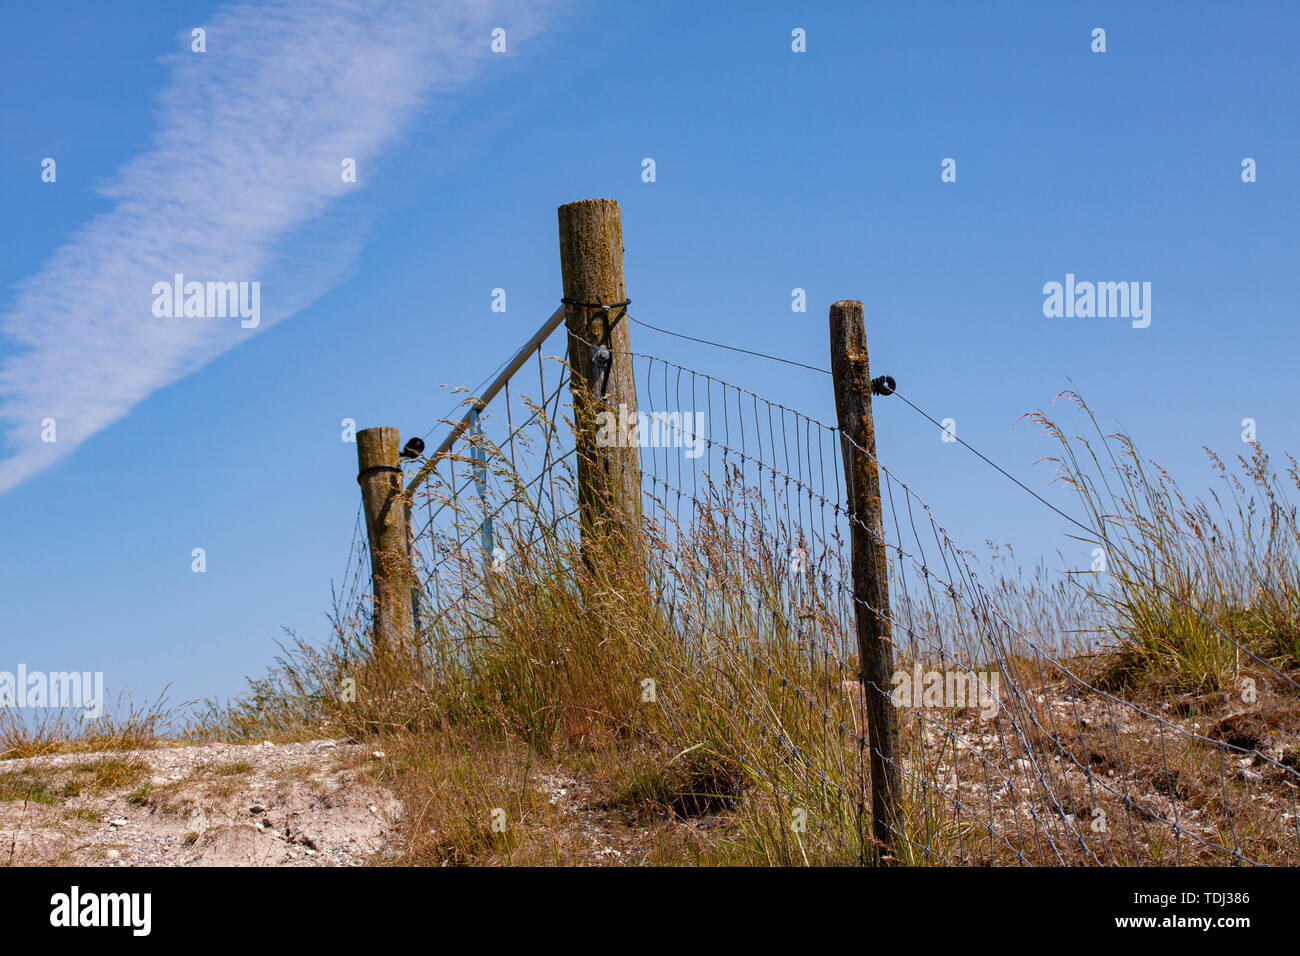 Old wire fence in nature with wooden posts on a sunny day against a blue sky. - Stock Image